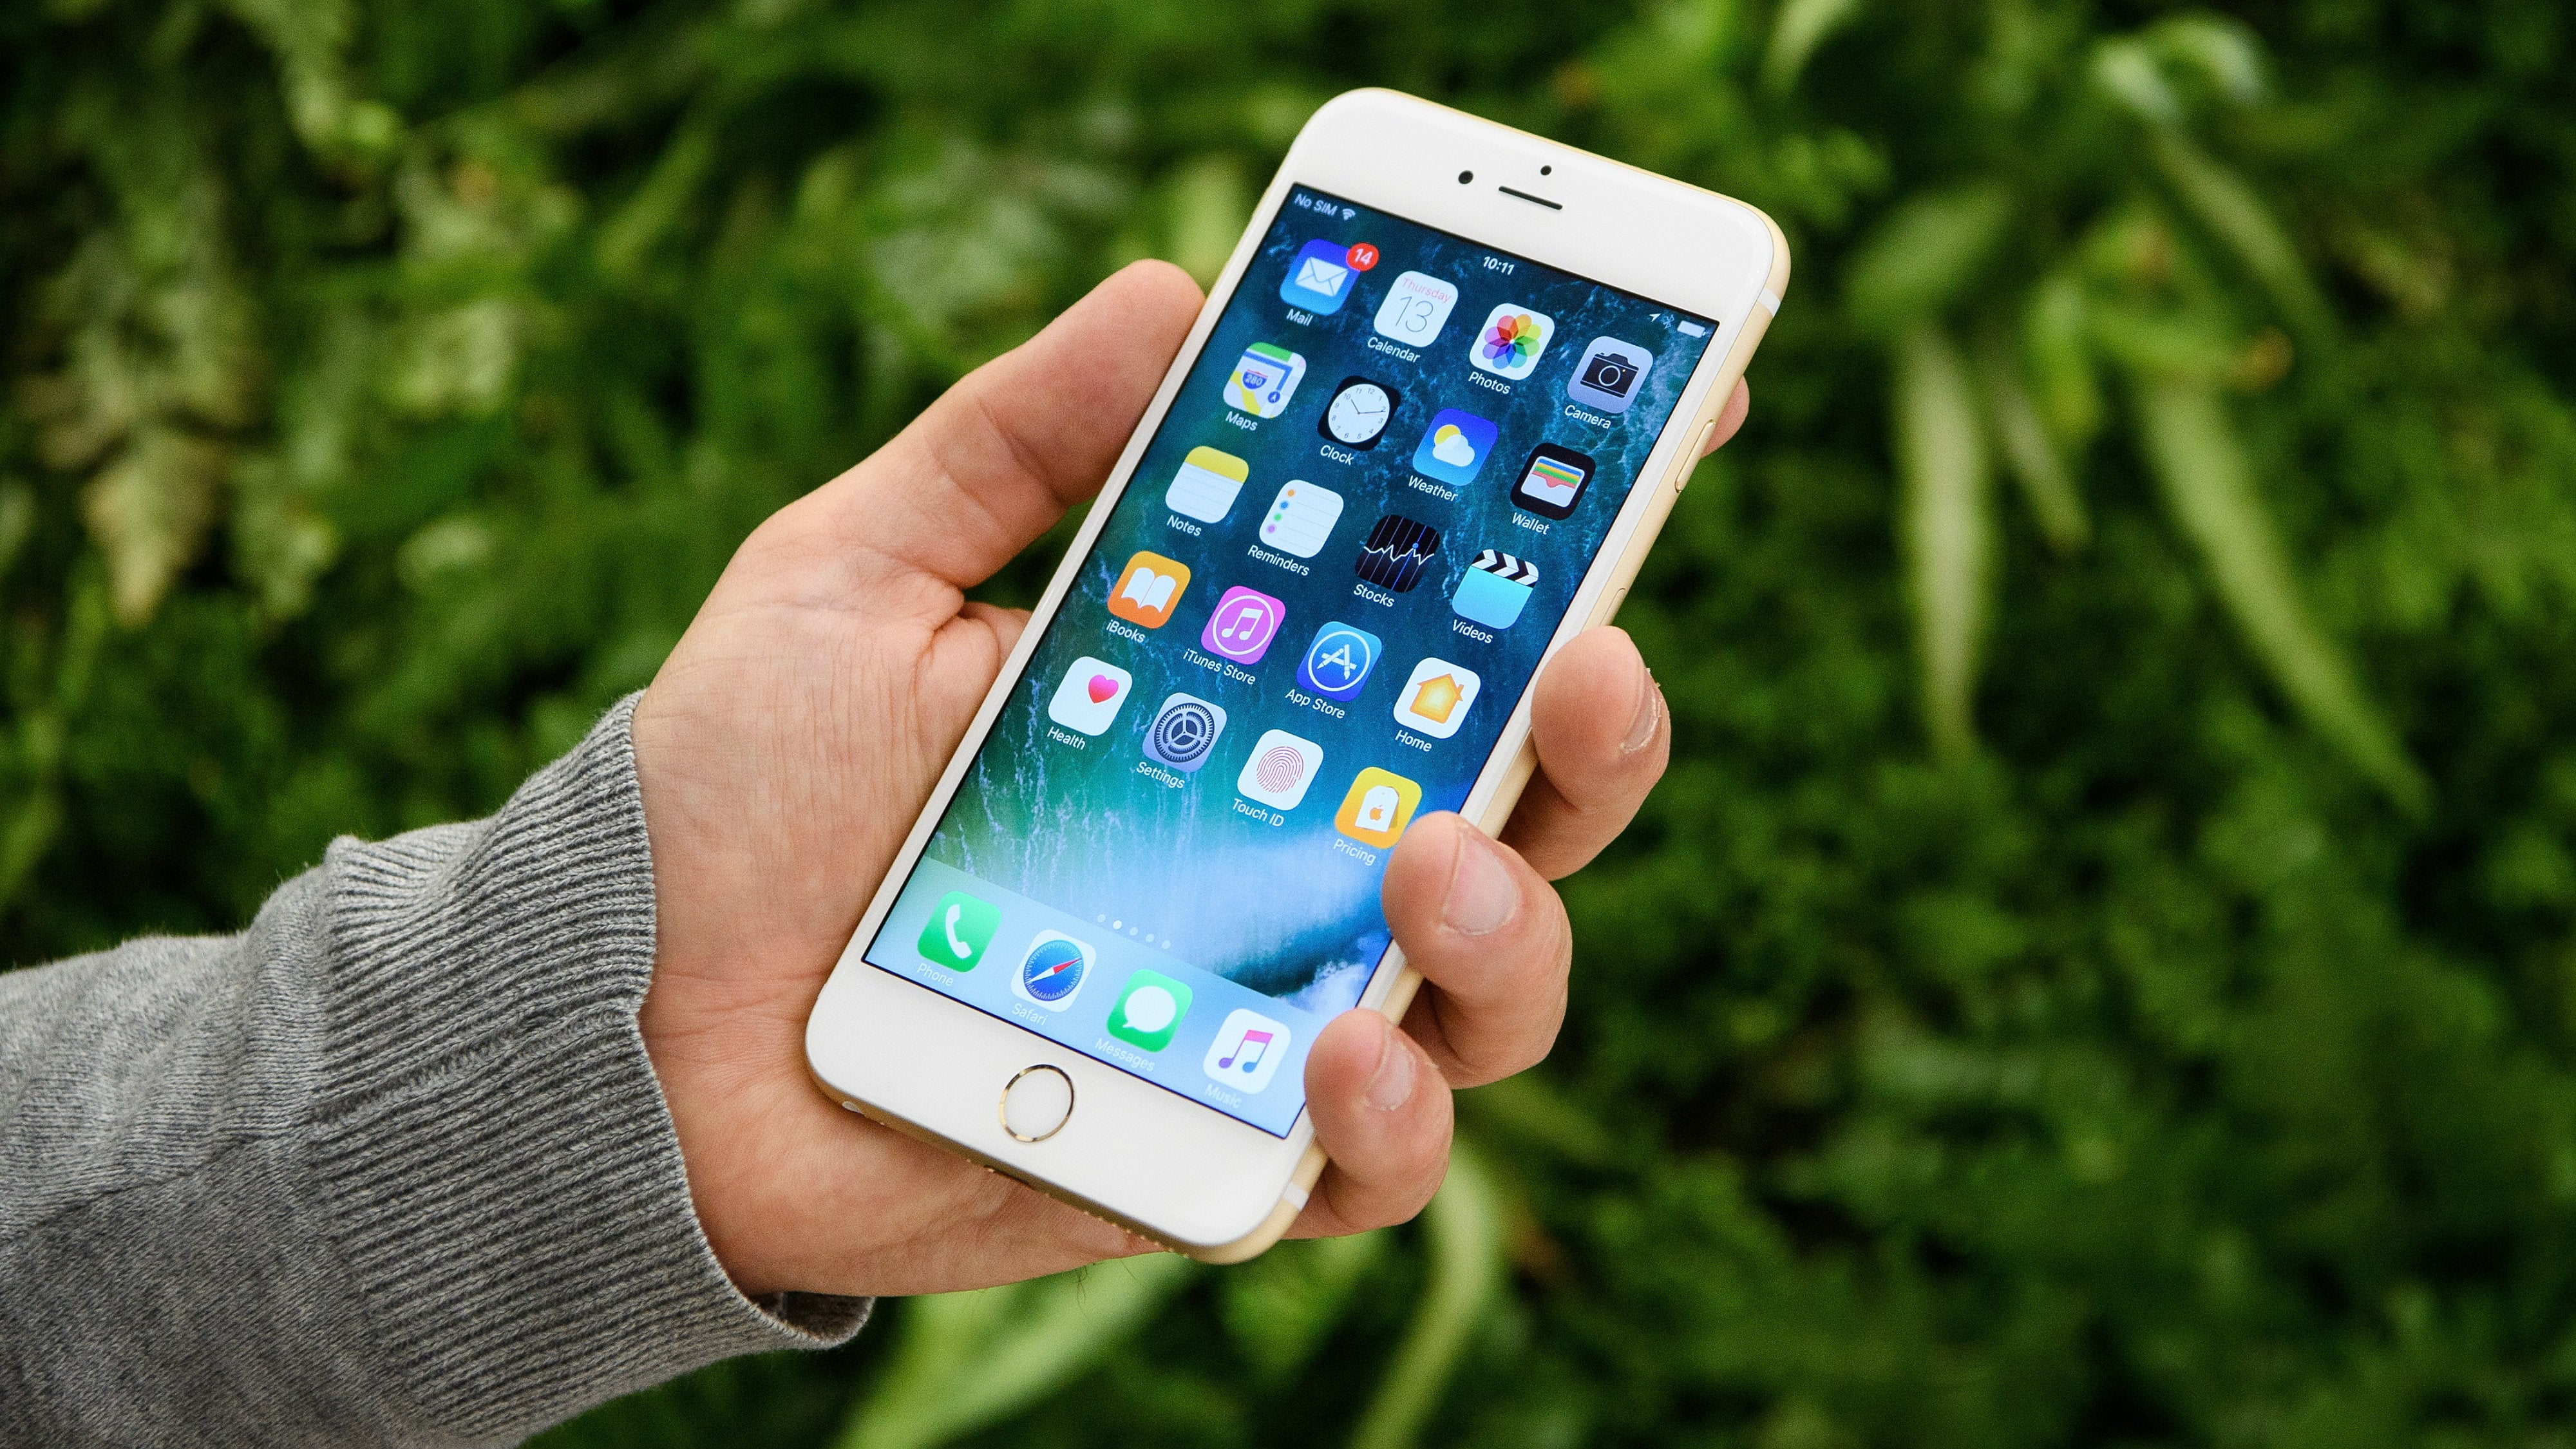 iPhone Bug Can Force Phones To Repeatedly Call 911